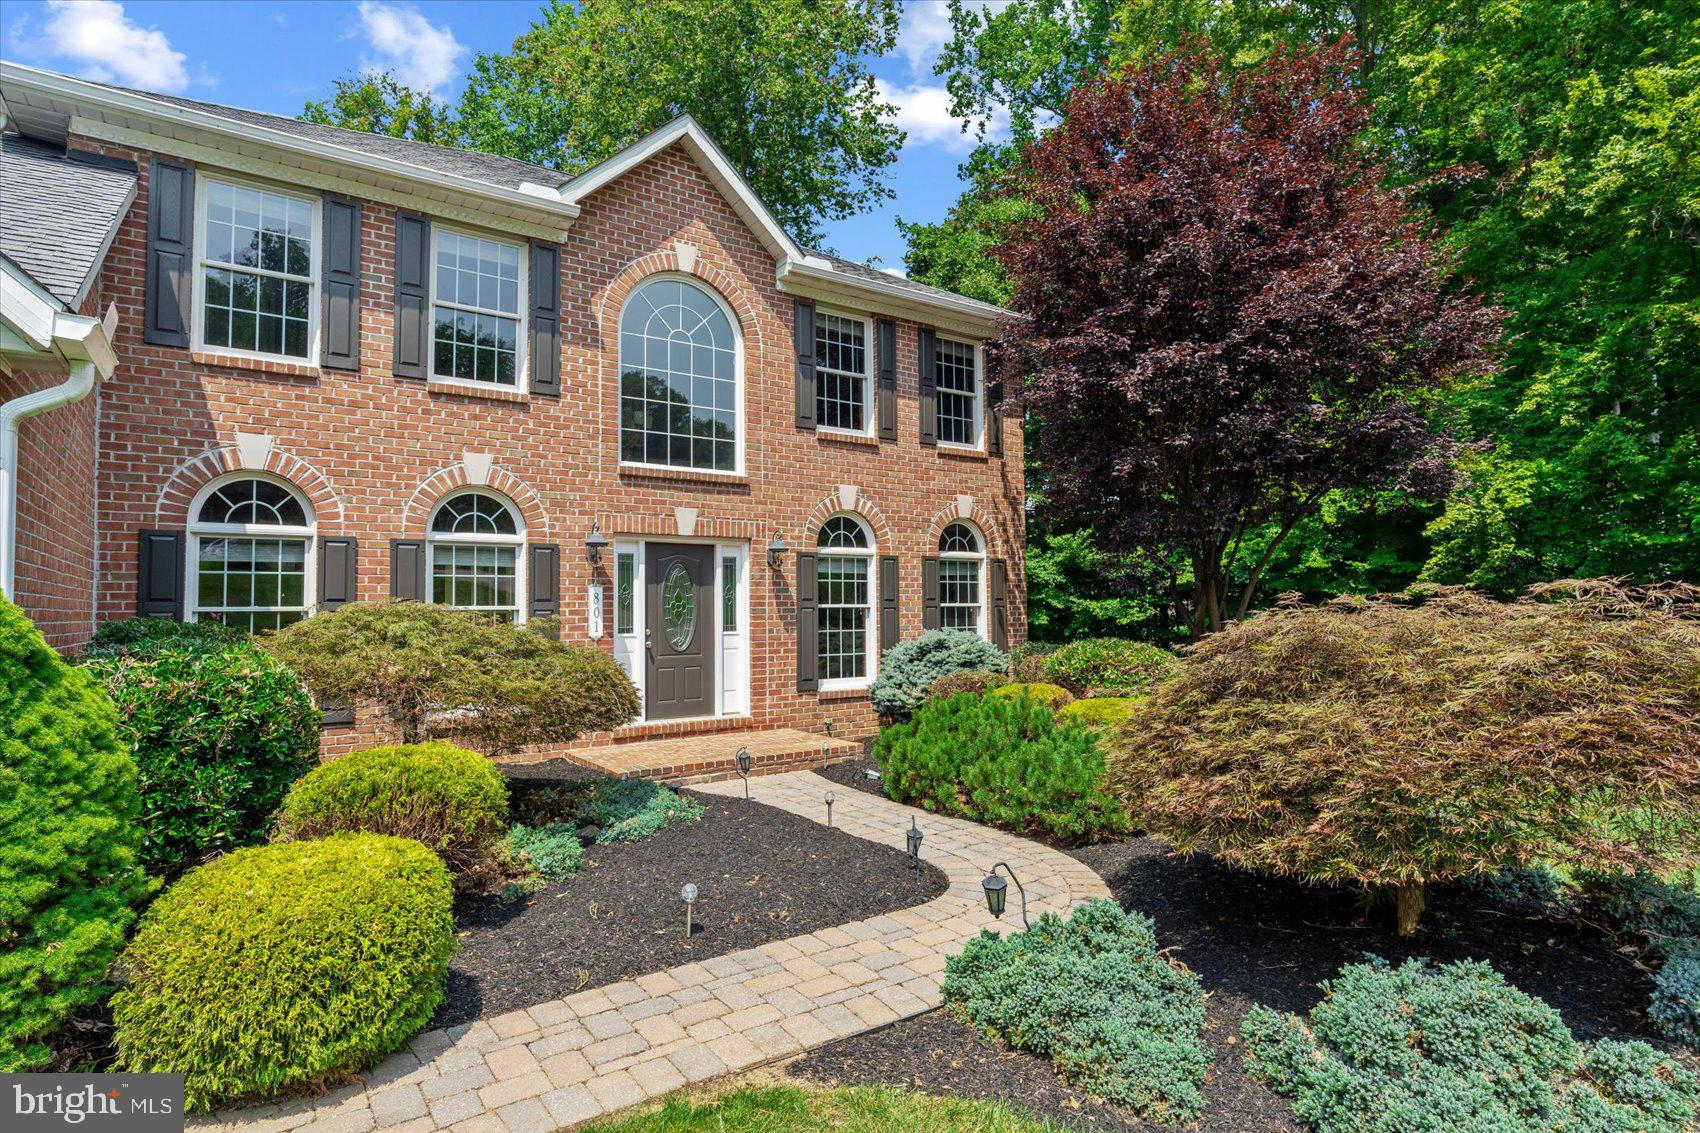 Gorgeous 5 Bedroom 3.5 Bath,2 Car Garage, 4k +/- Sq Ft  Home In Sought After Cedarday Community! Wal